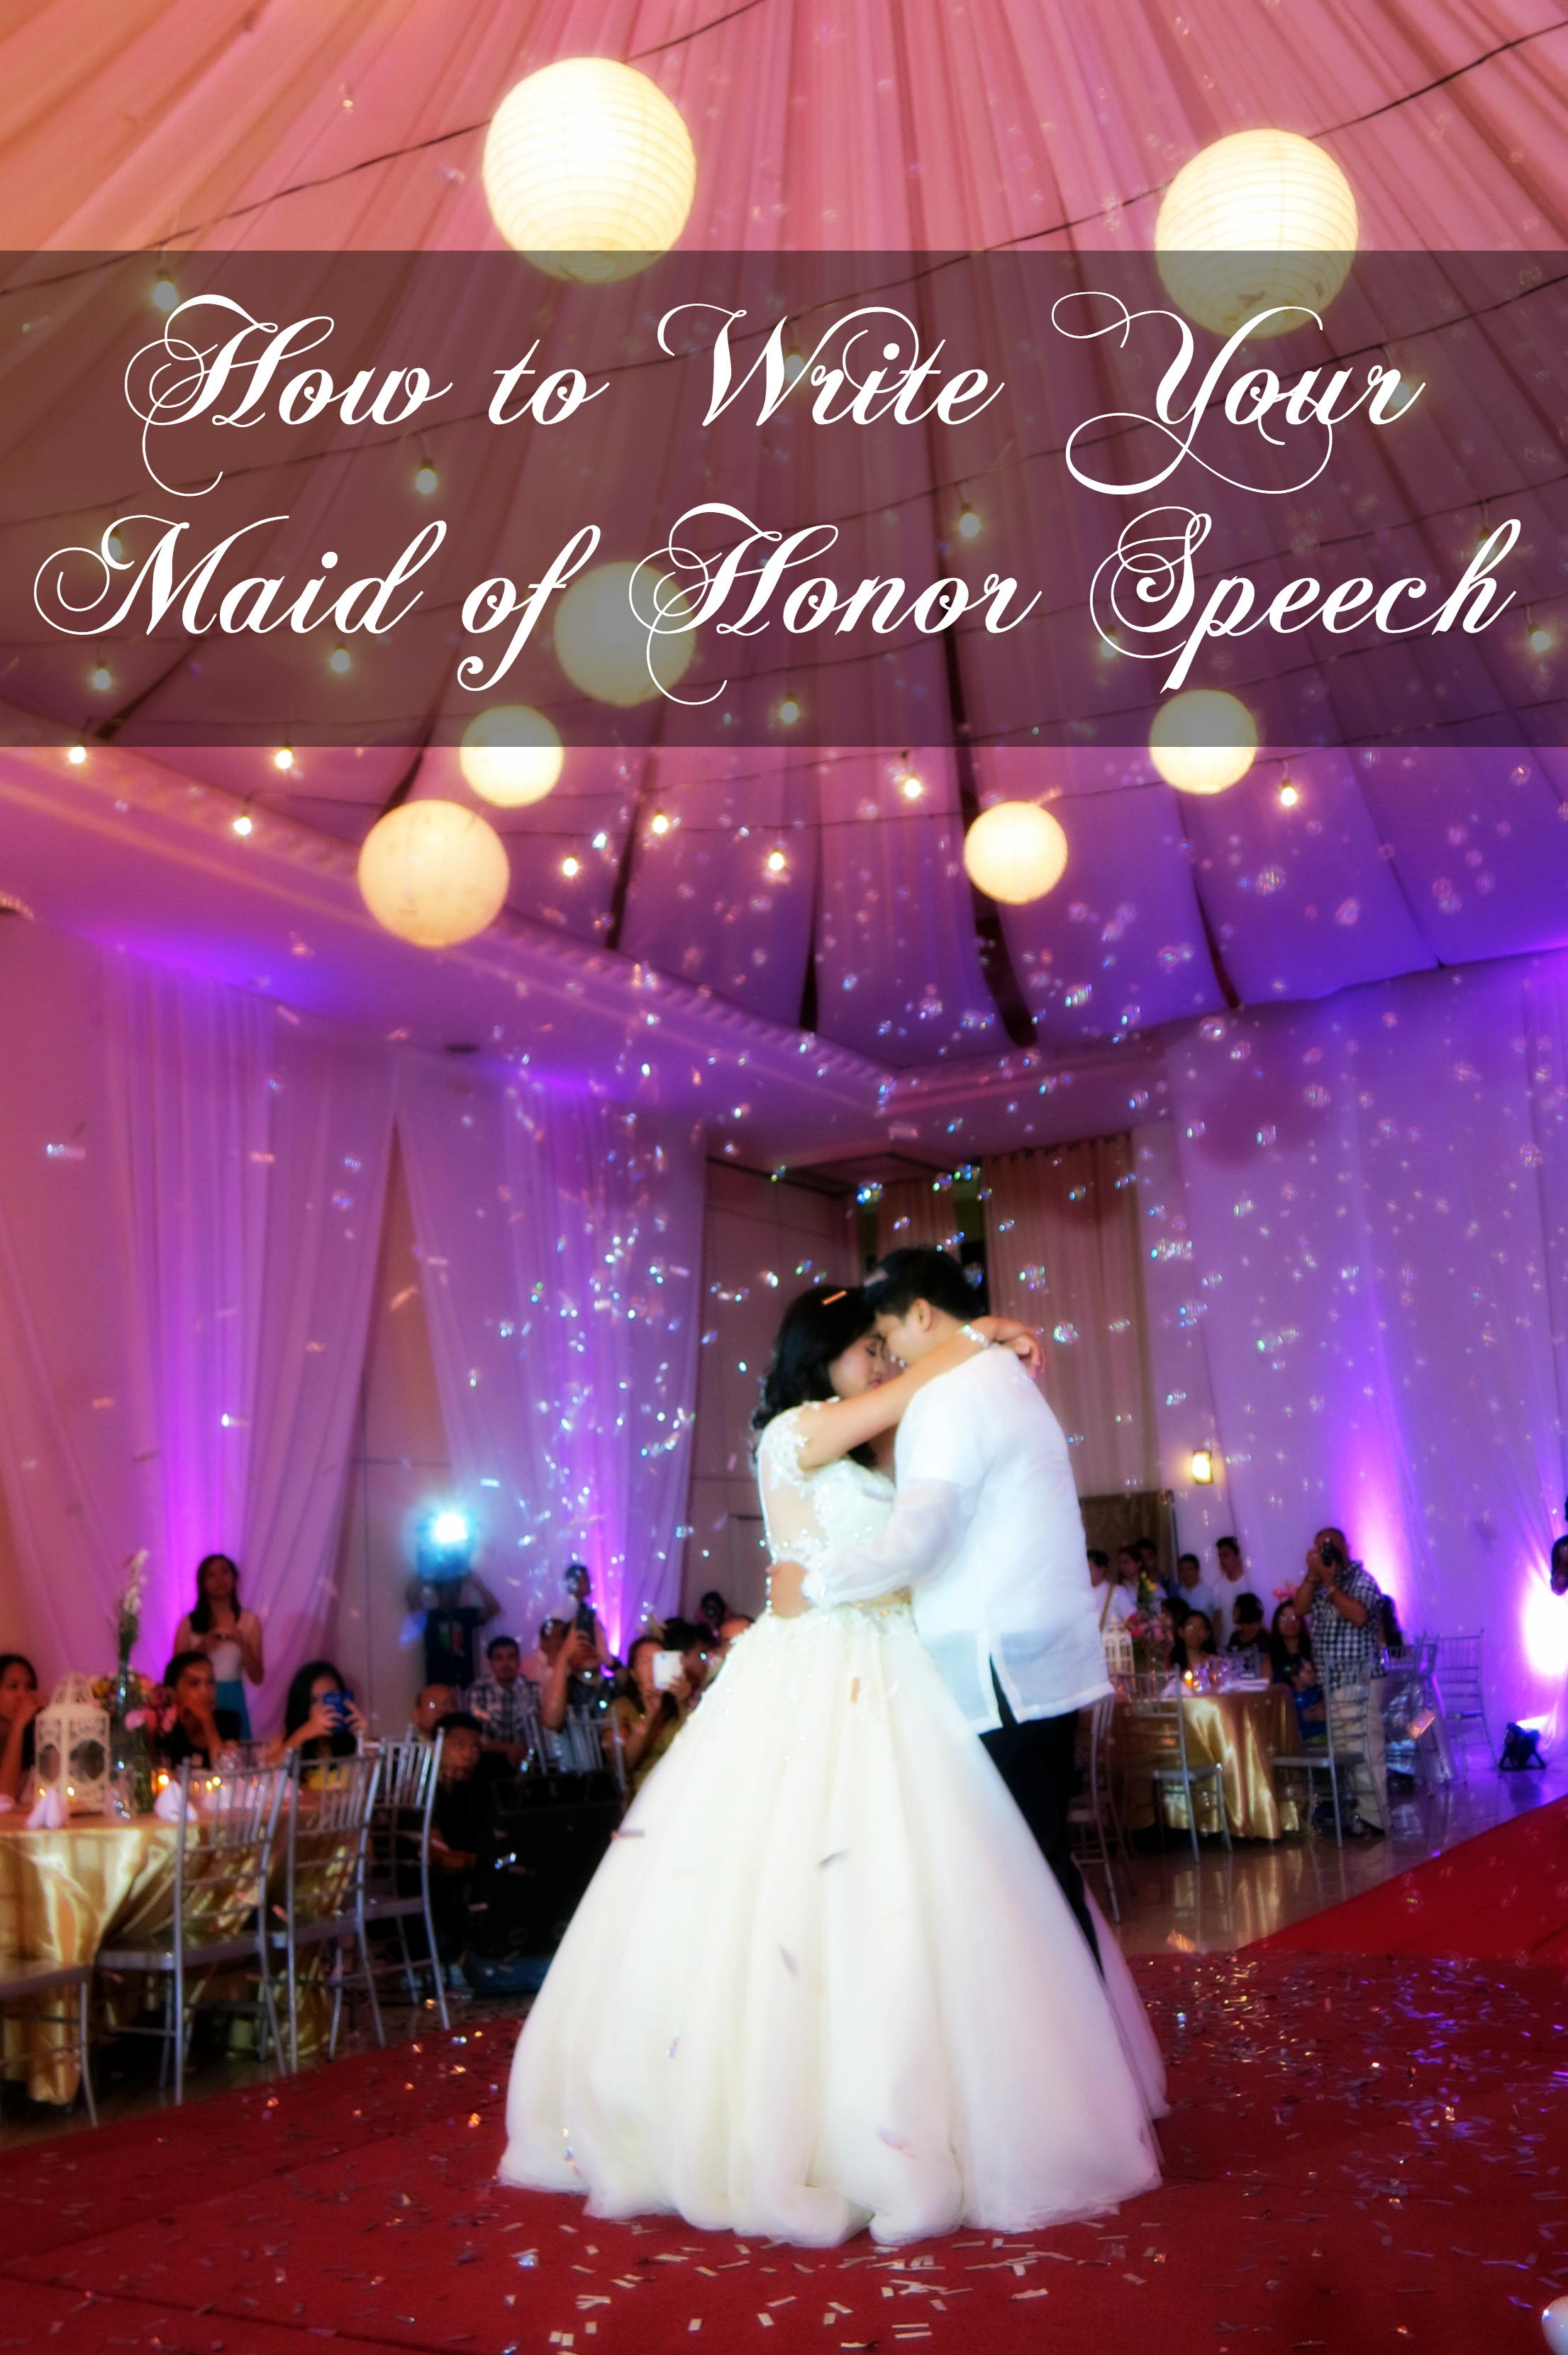 Tips on how to write your maid of honor speech